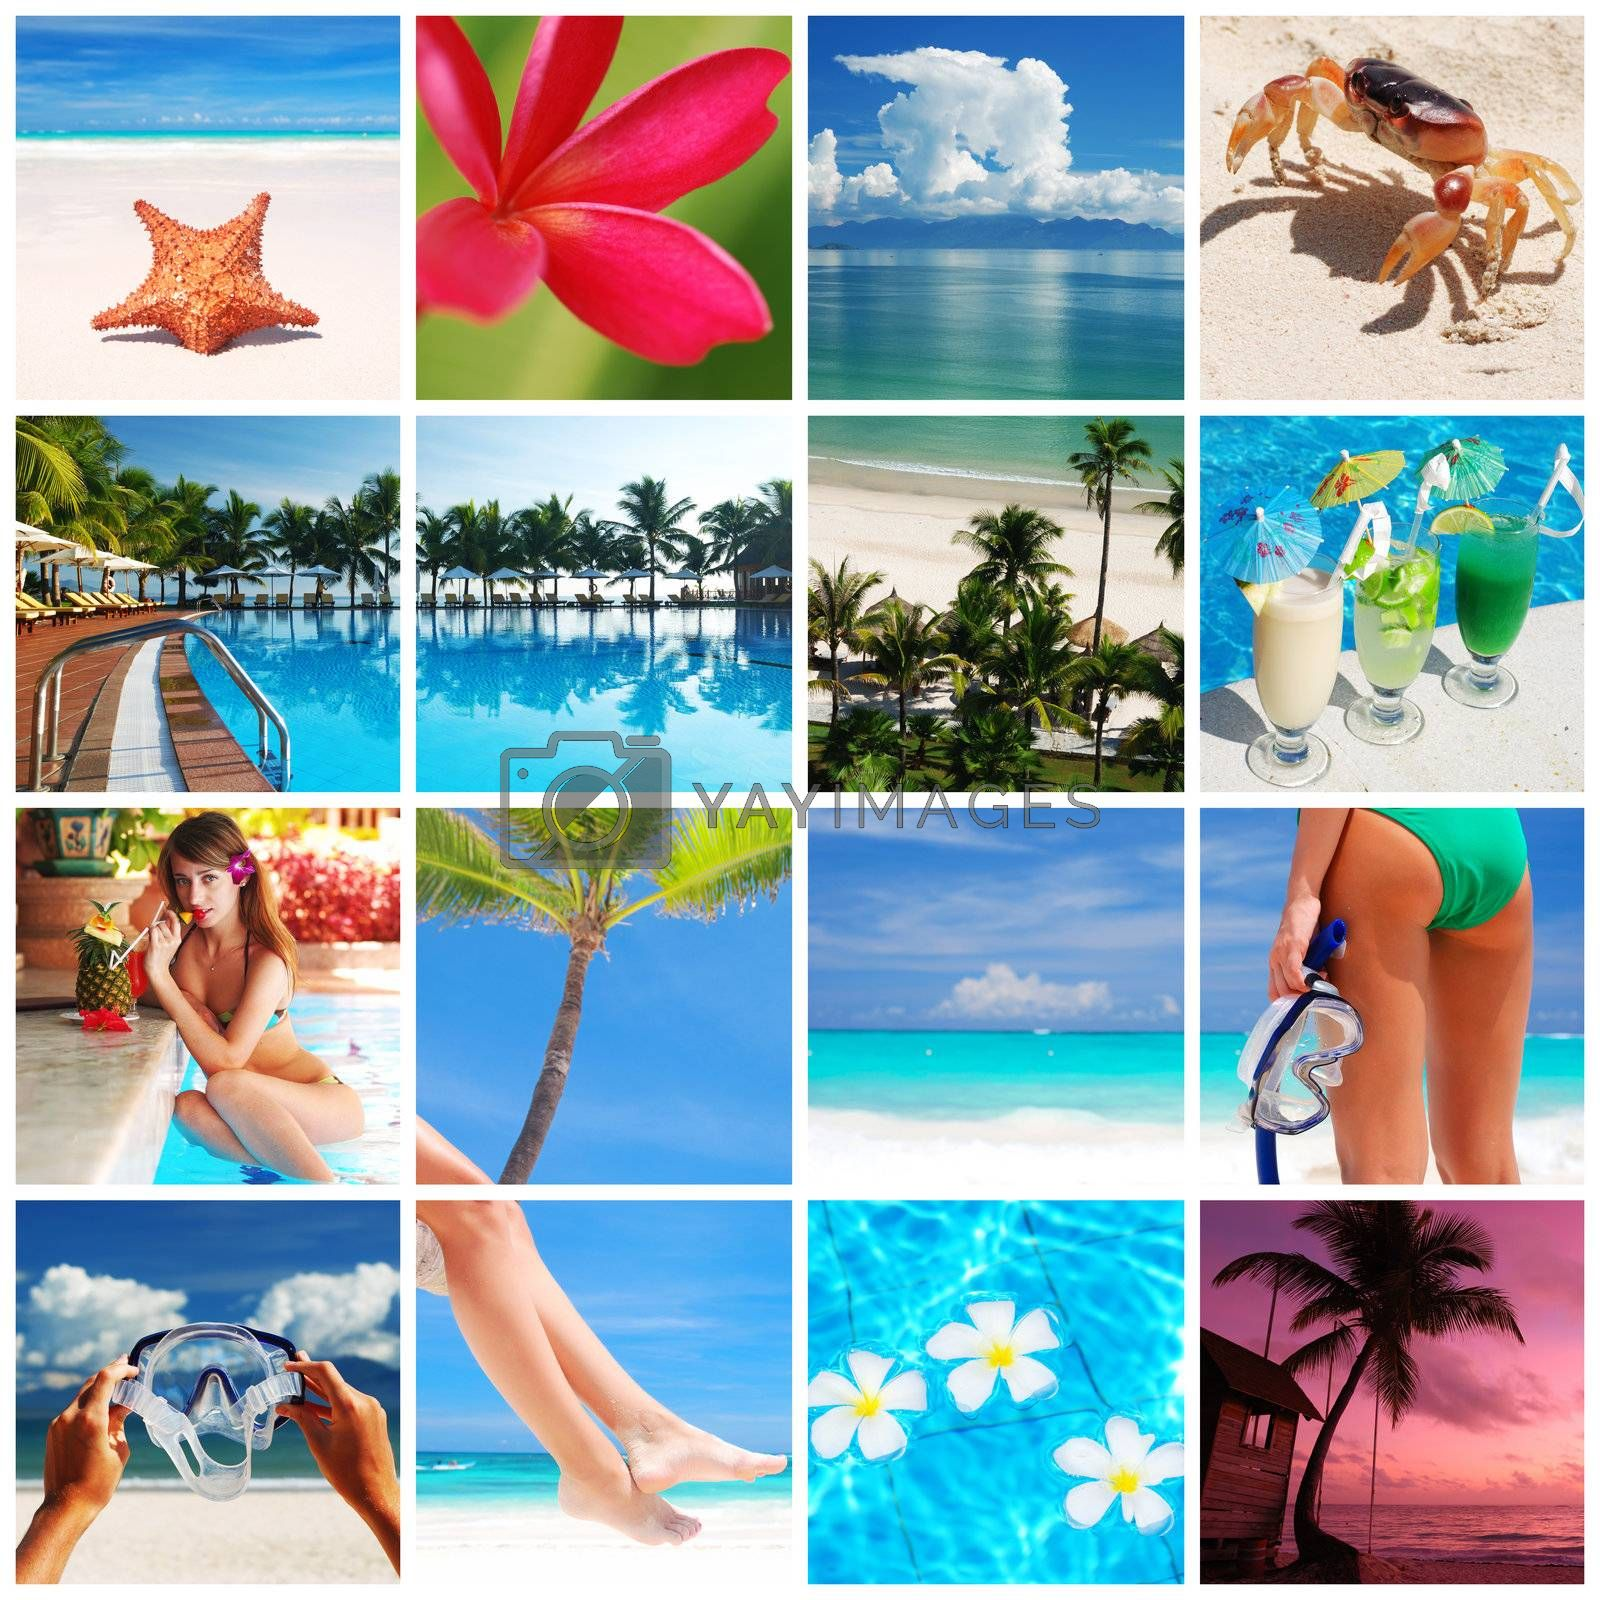 Collage made with beautiful tropical resort shots